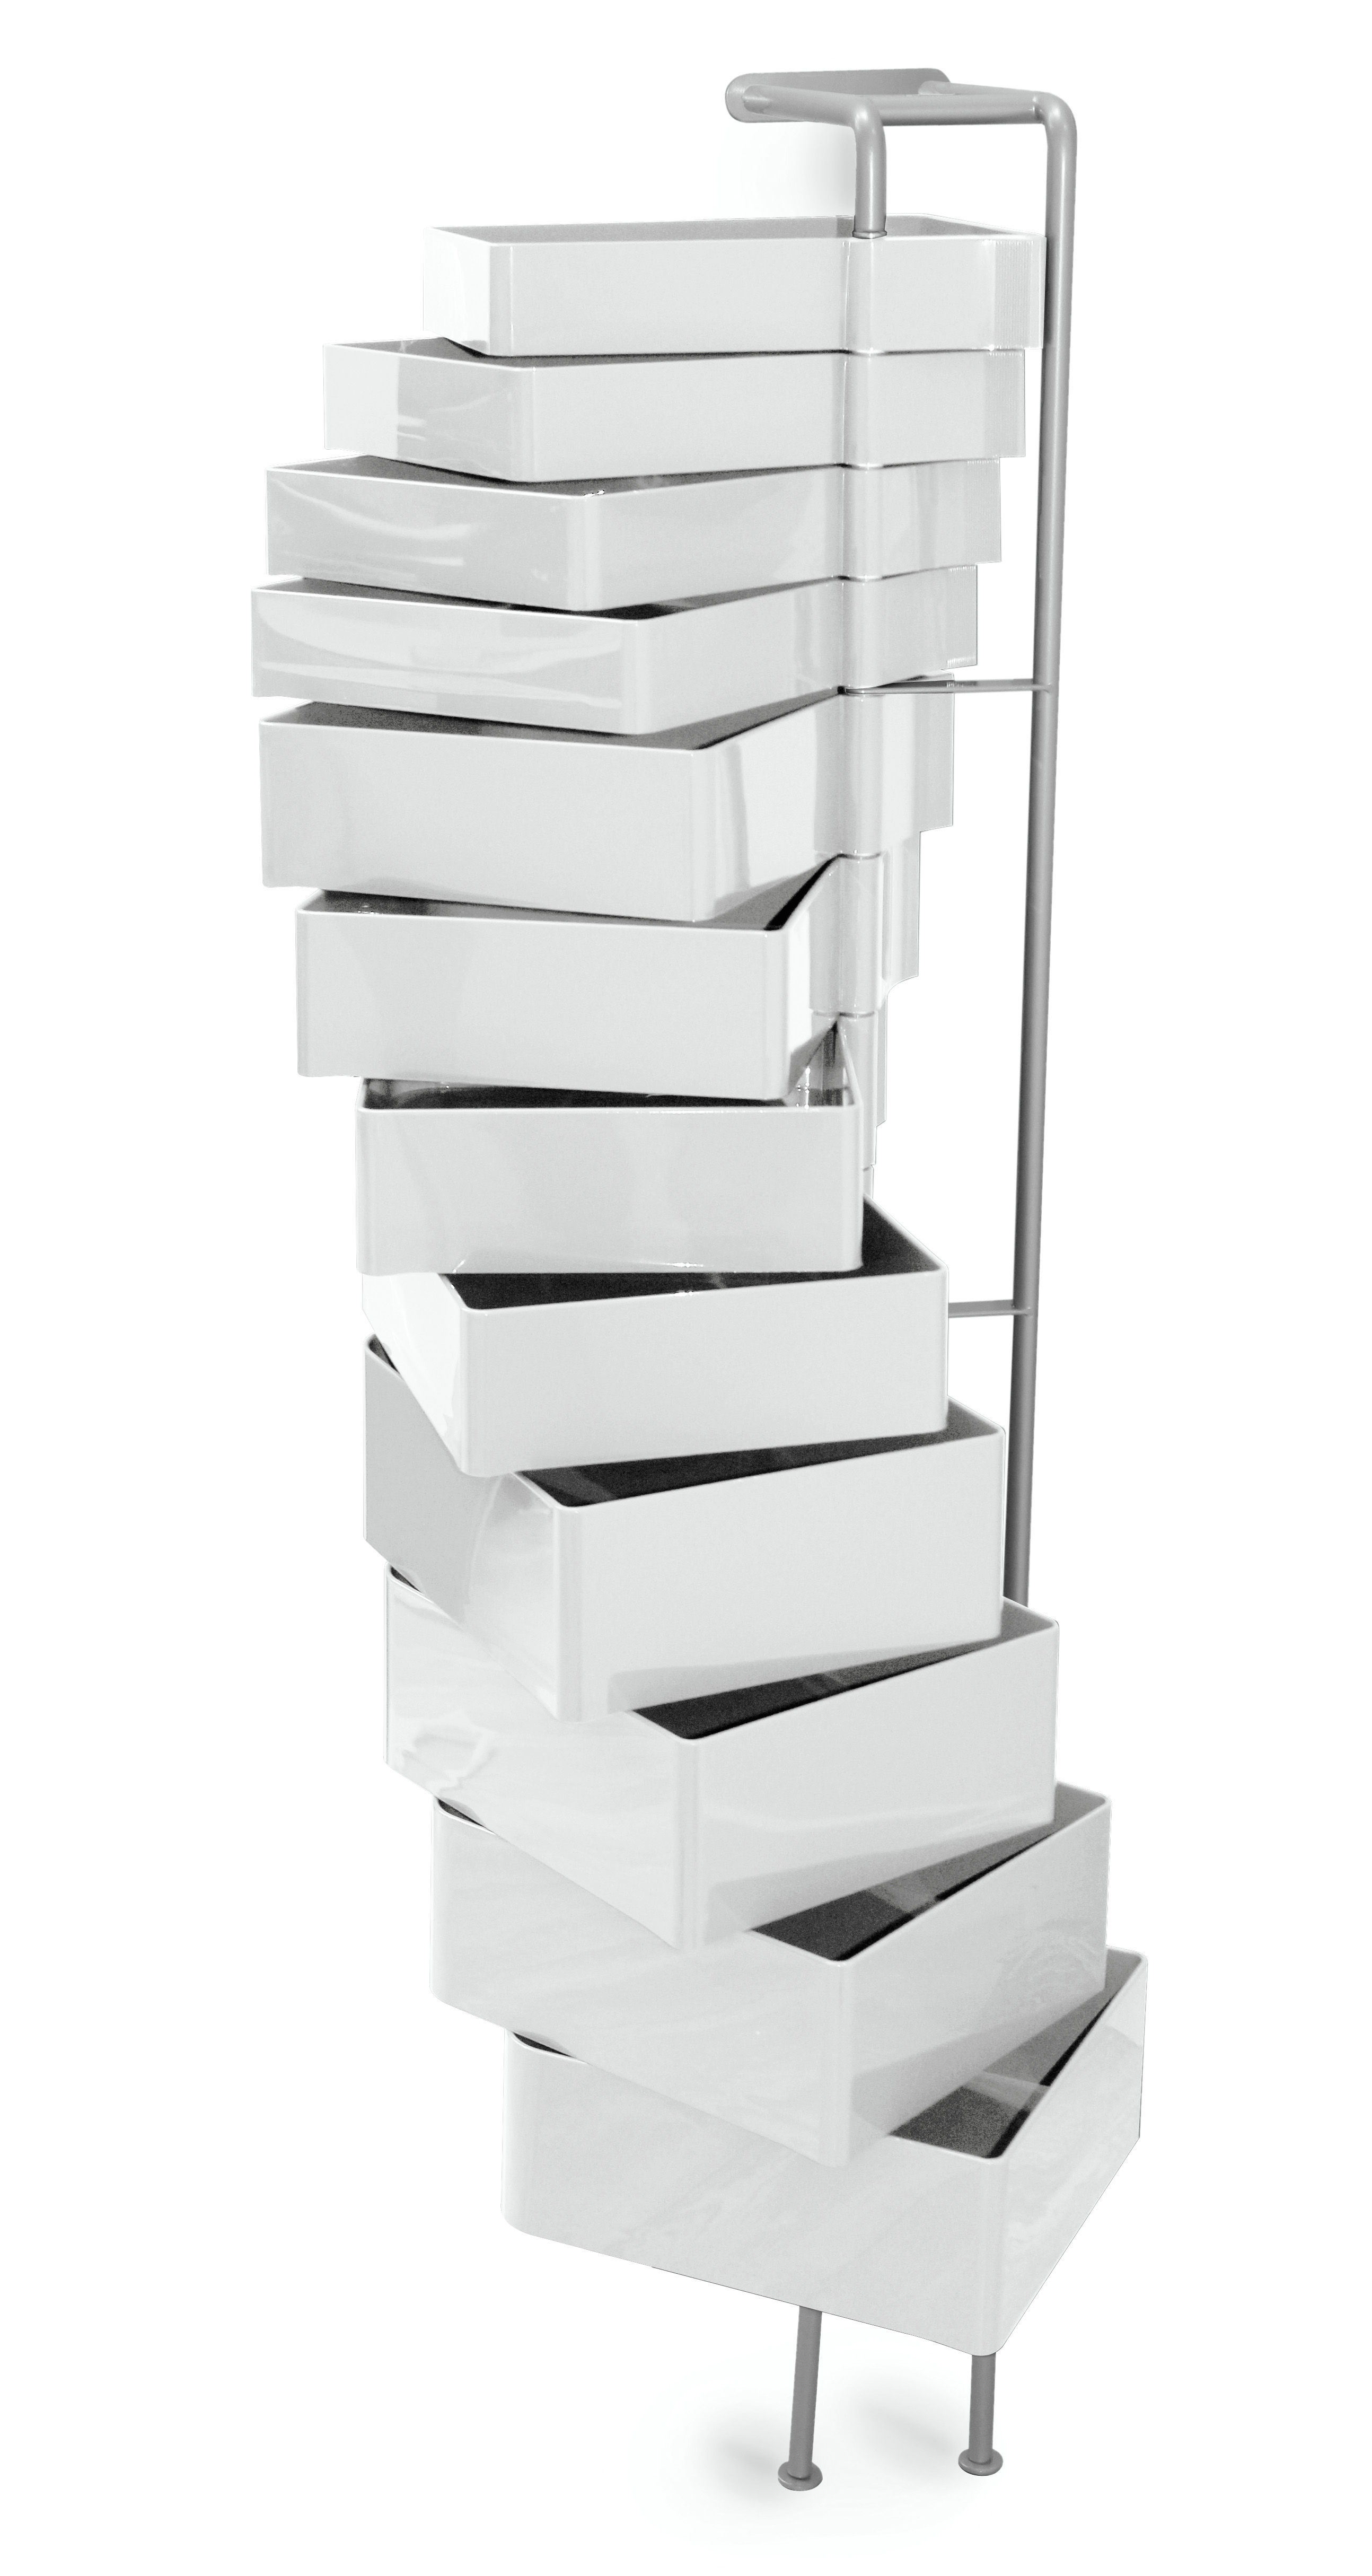 Furniture - Shelves & Storage Furniture - Spinny Wall storage by B-LINE - White - ABS, Varnished steel